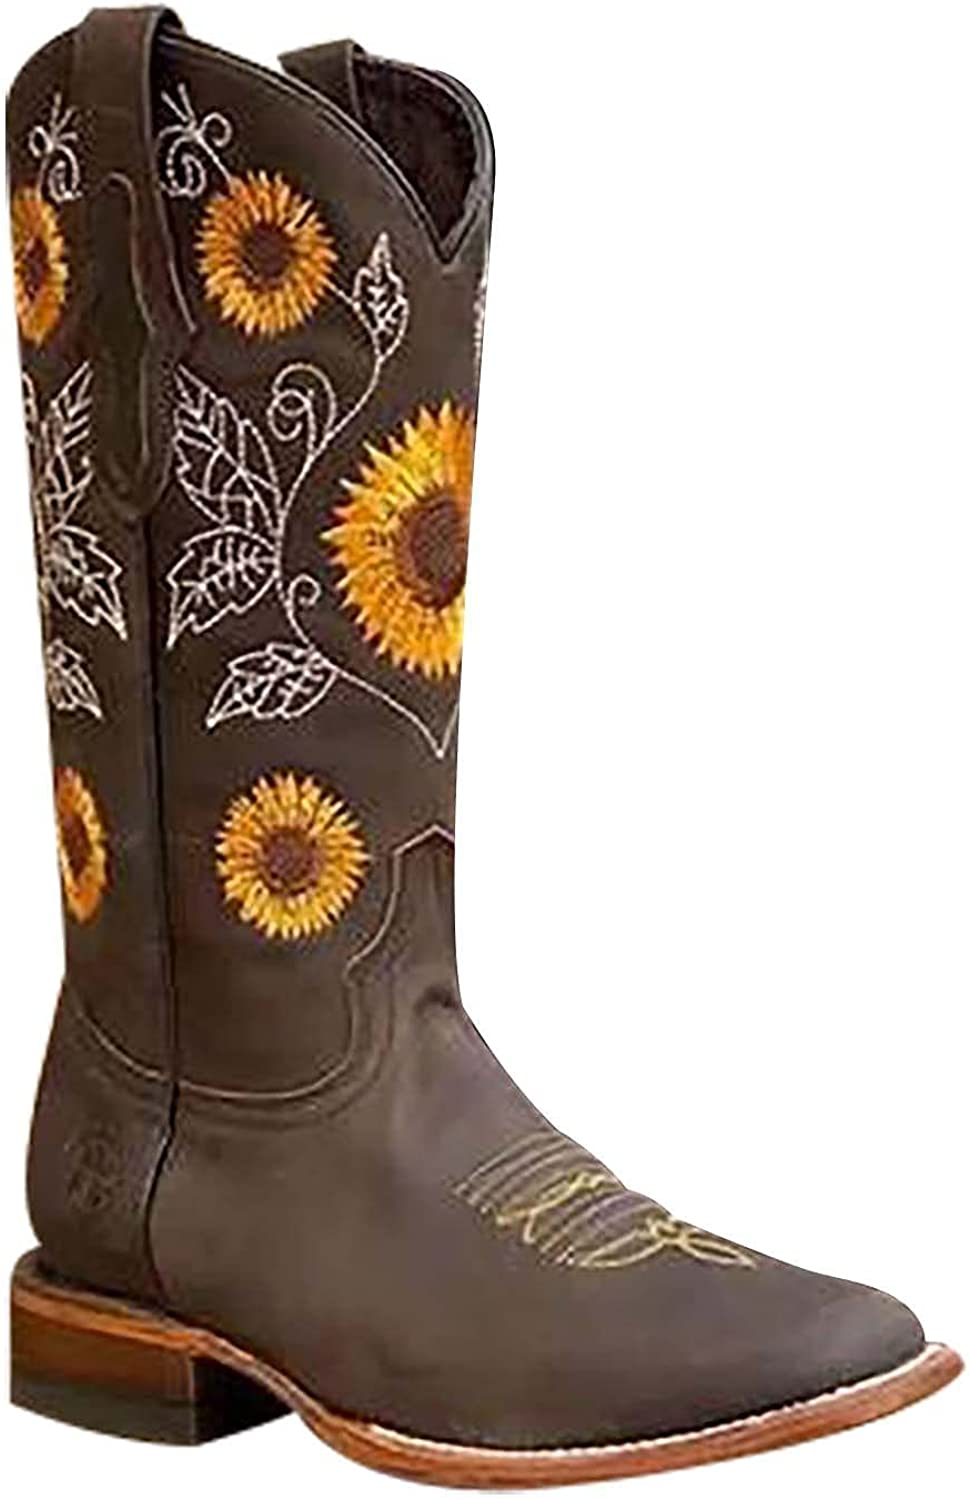 Cowboy Boots Women Western Boots Cowgirl Boots Embroidery Mid-calf Boots Ladies Pointy Toe Fashion Boots